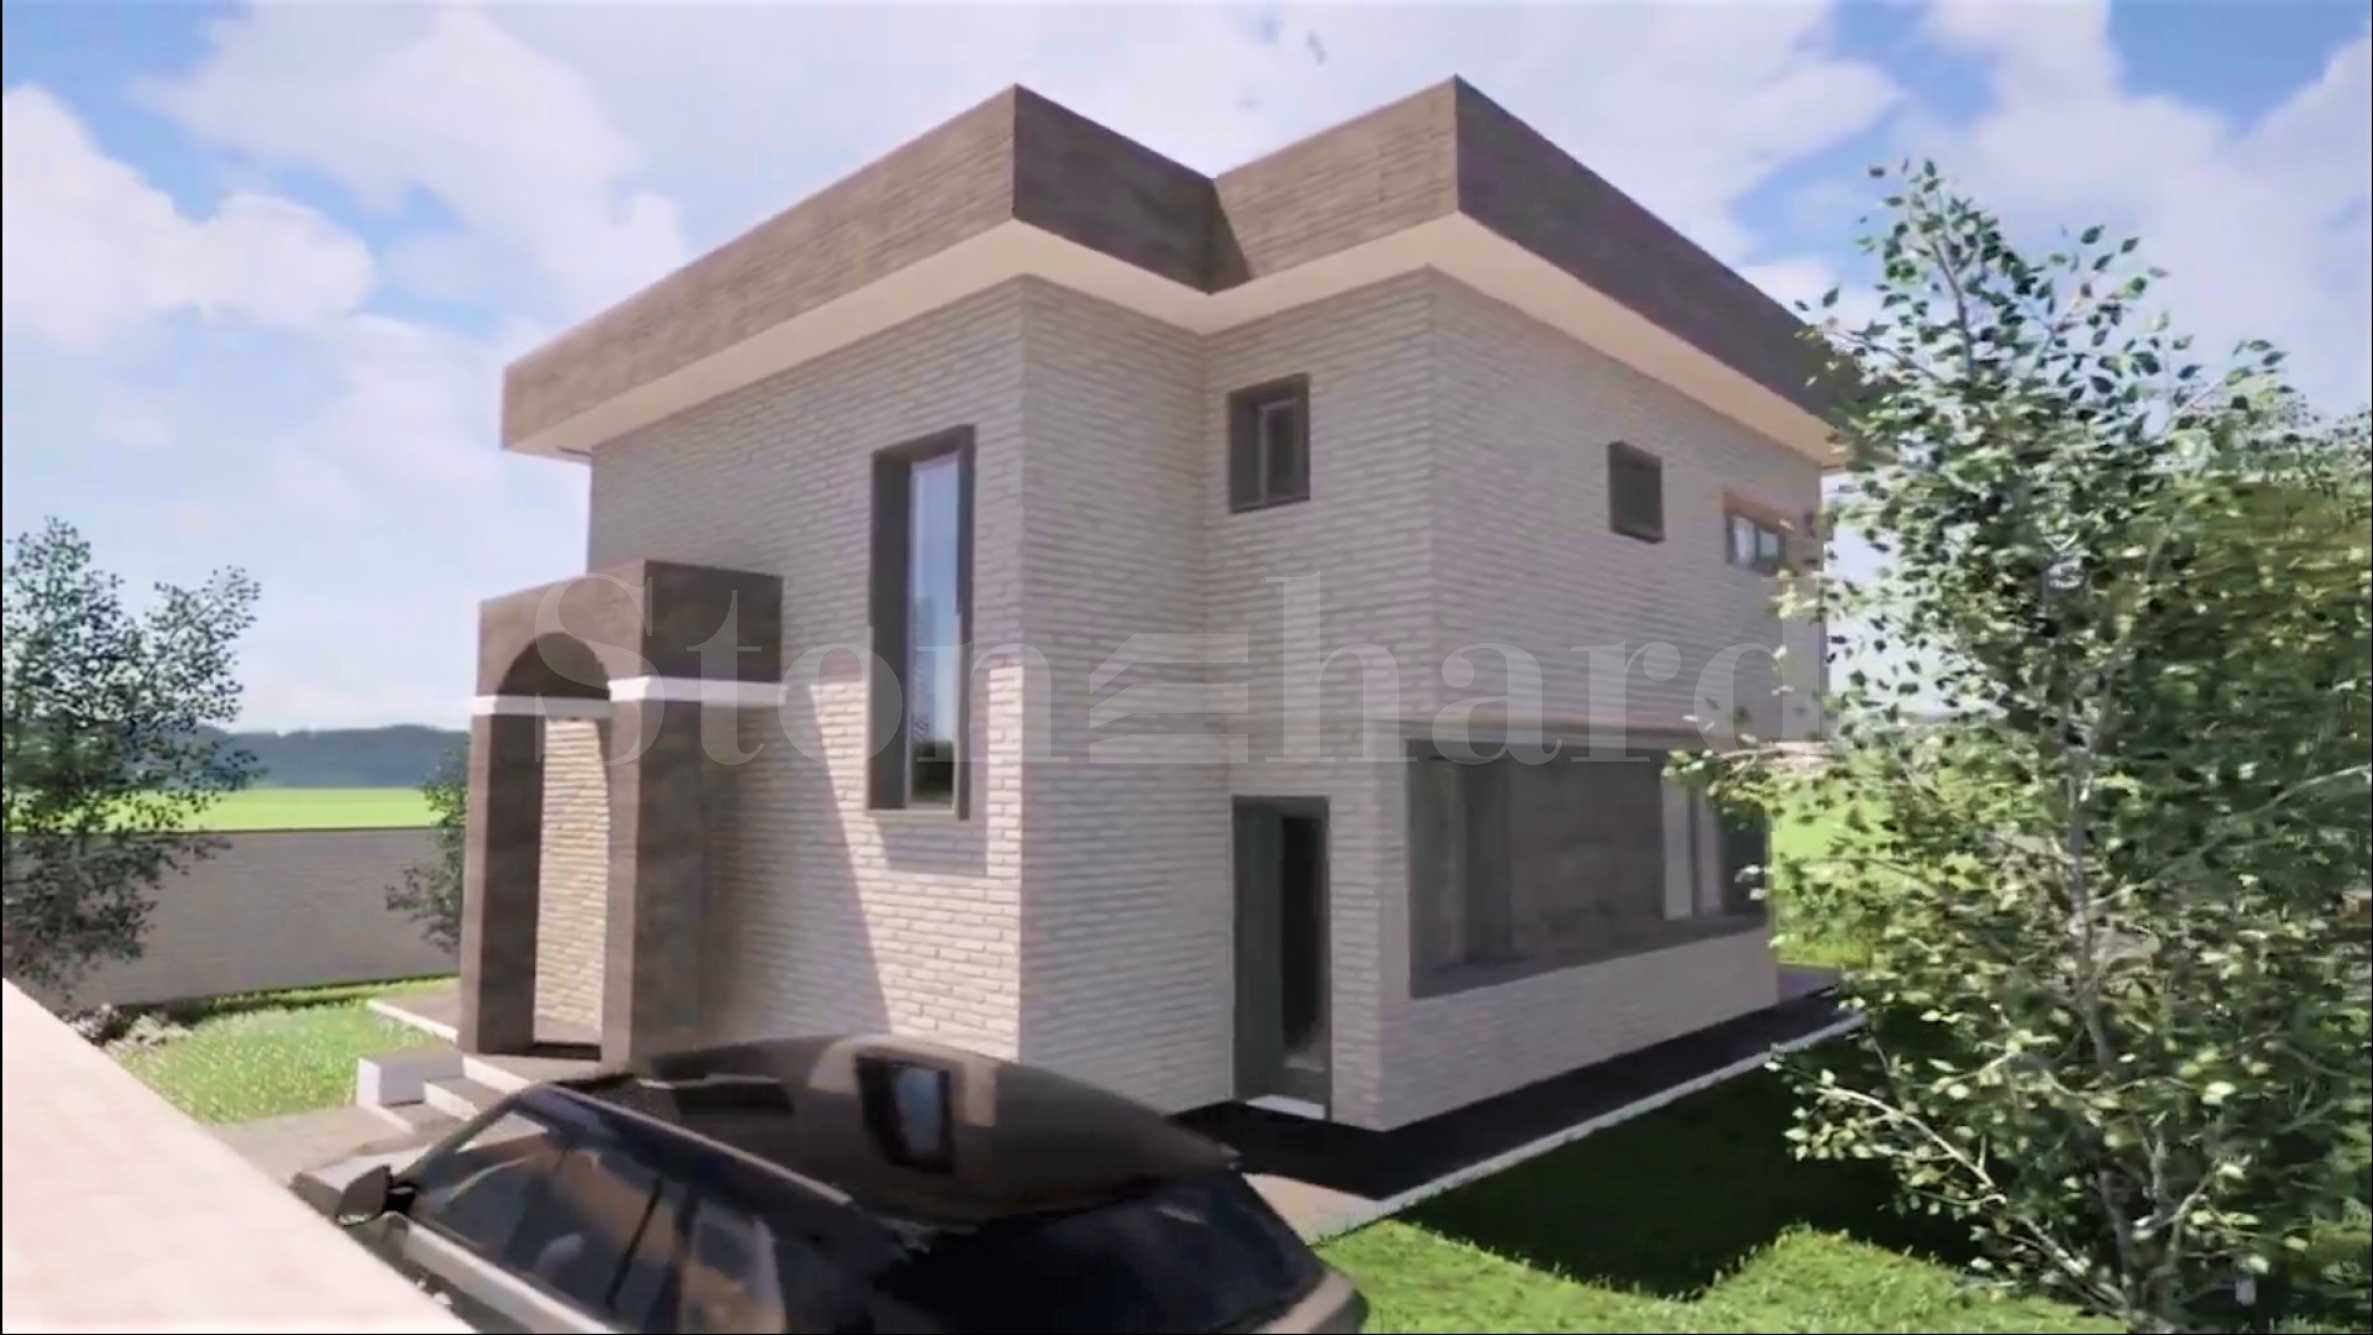 Modern seaside houses with gardens and parking spaces in Burgas2 - Stonehard